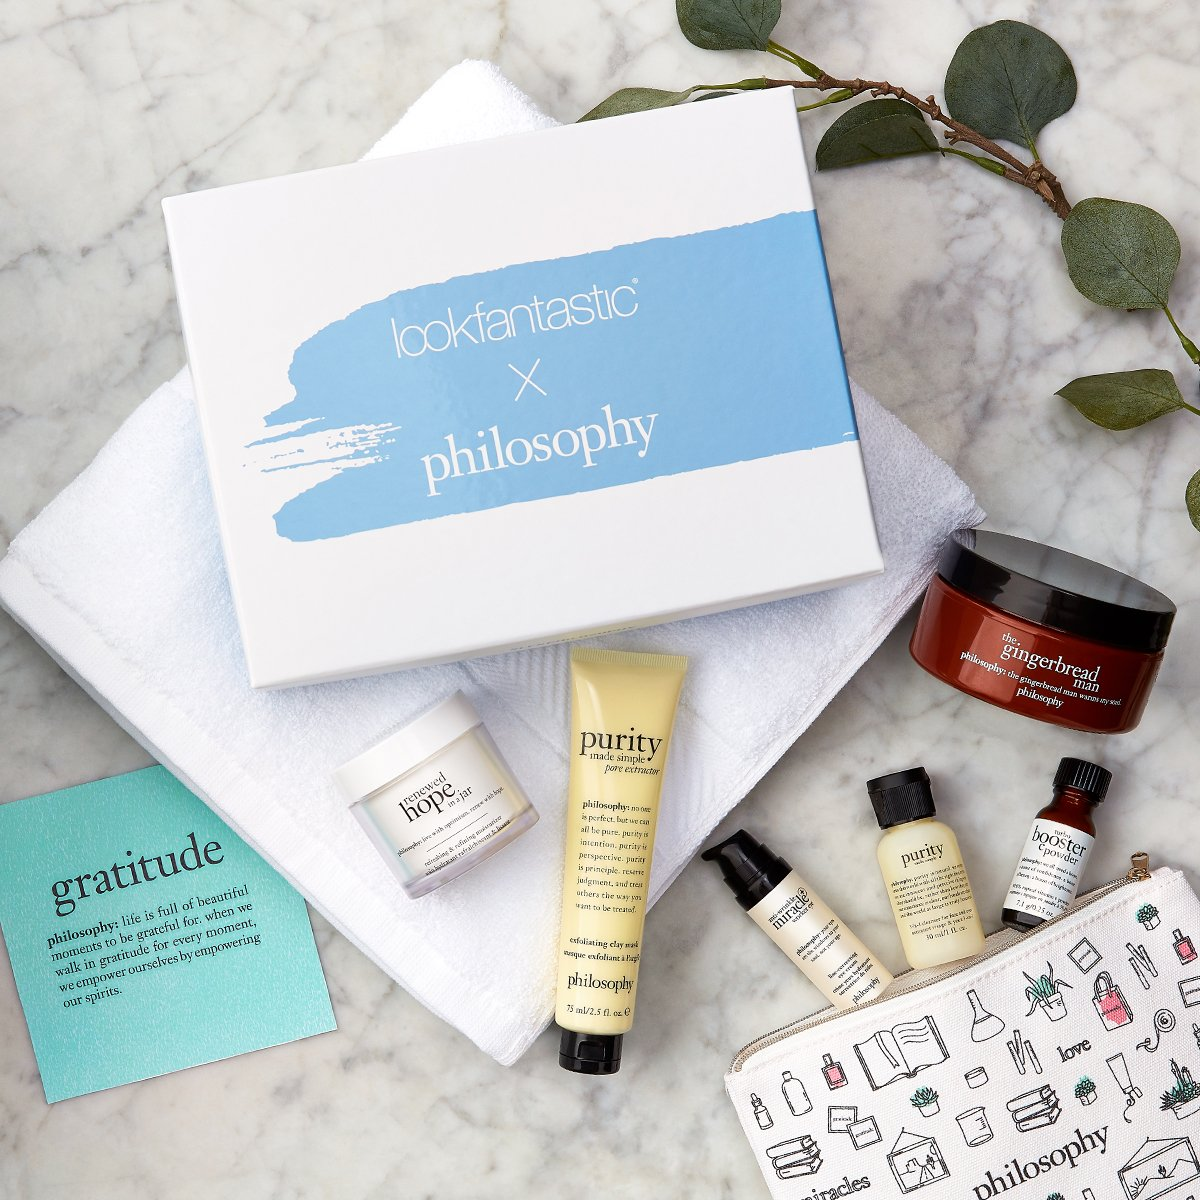 Introducing the lookfantastic x philosophy Limited Edition Beauty Box